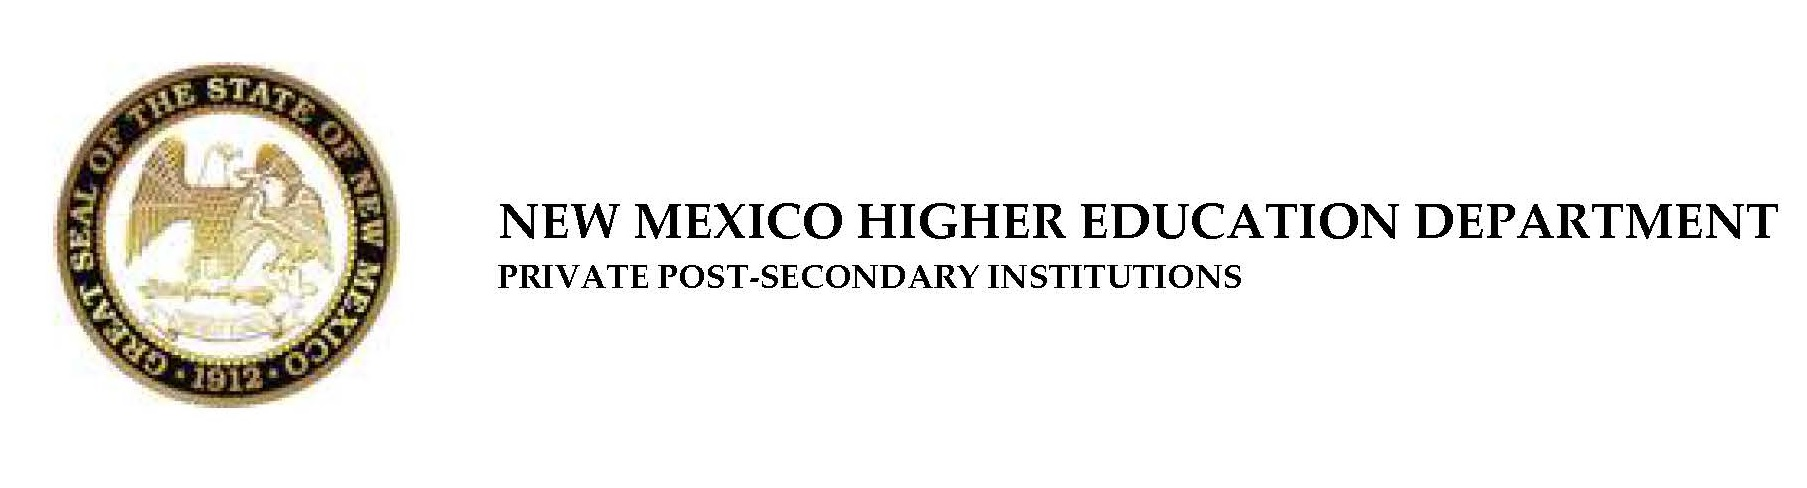 New Mexico Higher Education Department logo